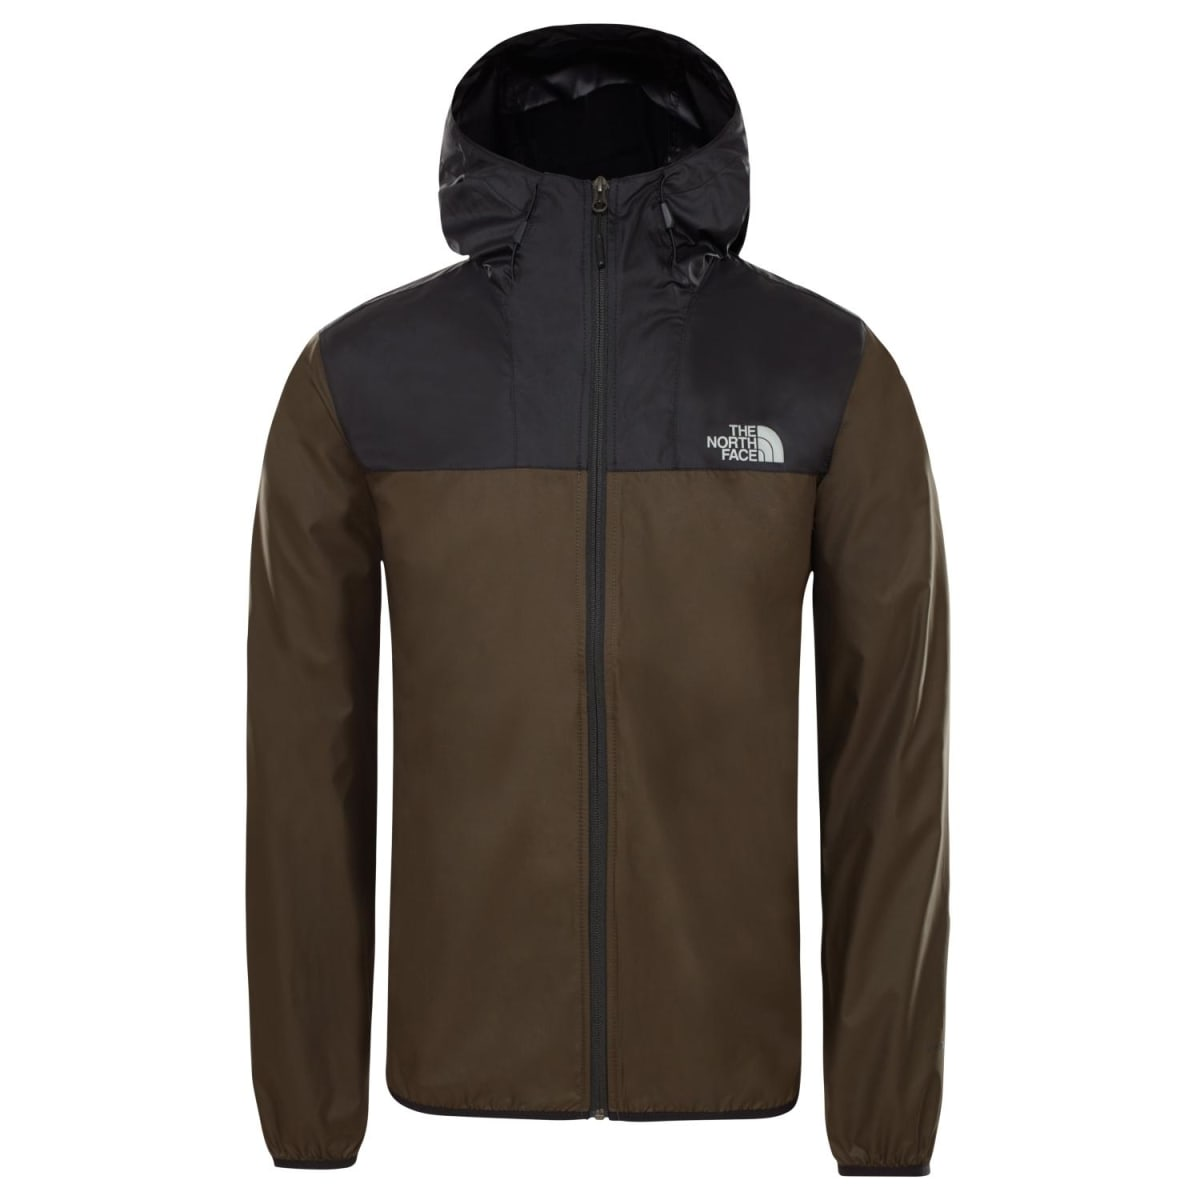 e80eb5762 North Face Products | Sportsmans Warehouse